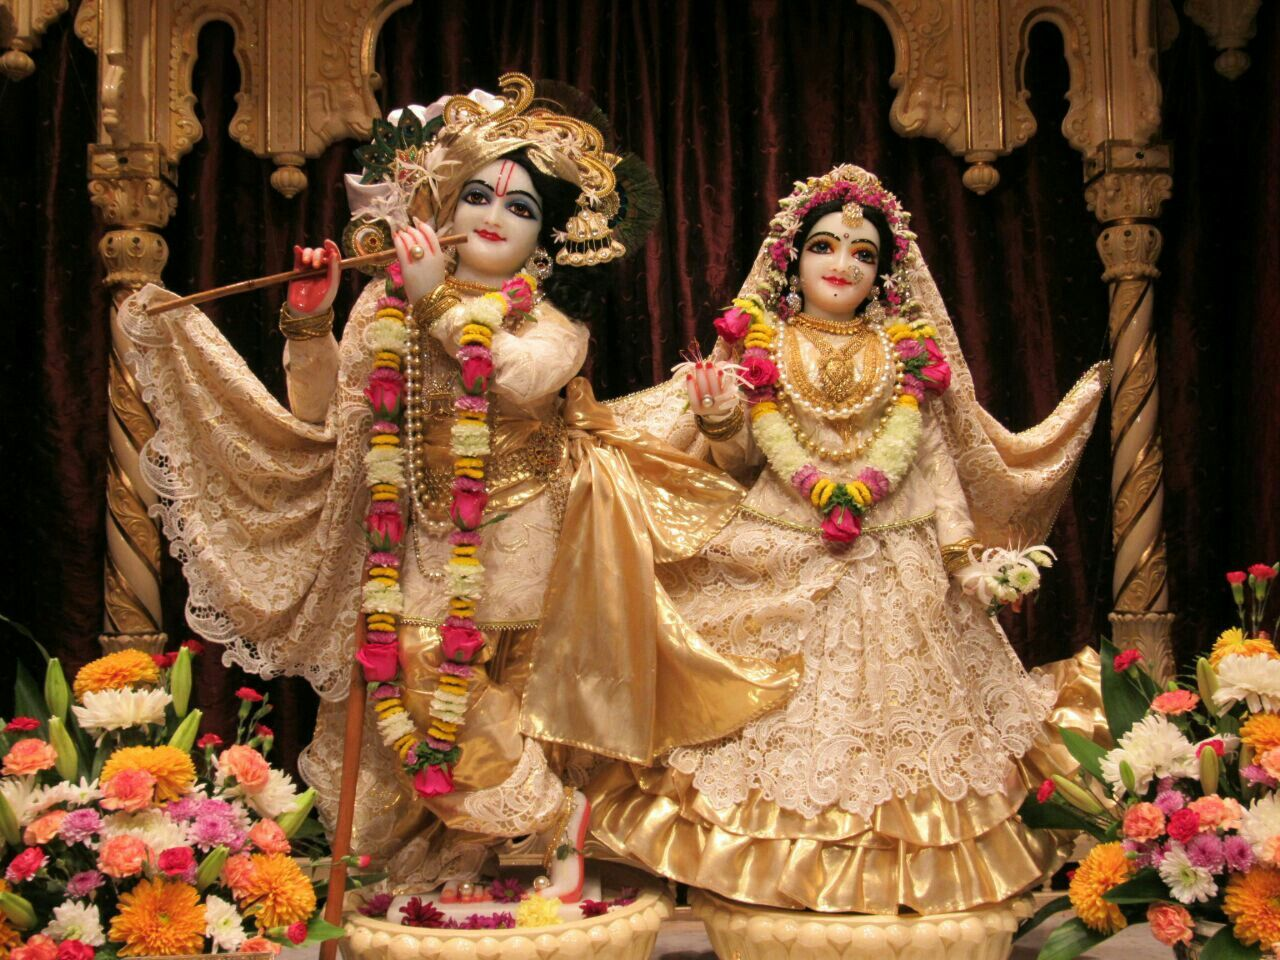 Pin by revathi sookraj on sri sri radha radhanath temple south dress patterns krishna temple south africa temples buddhist temple sewing patterns pattern drafting jeuxipadfo Images